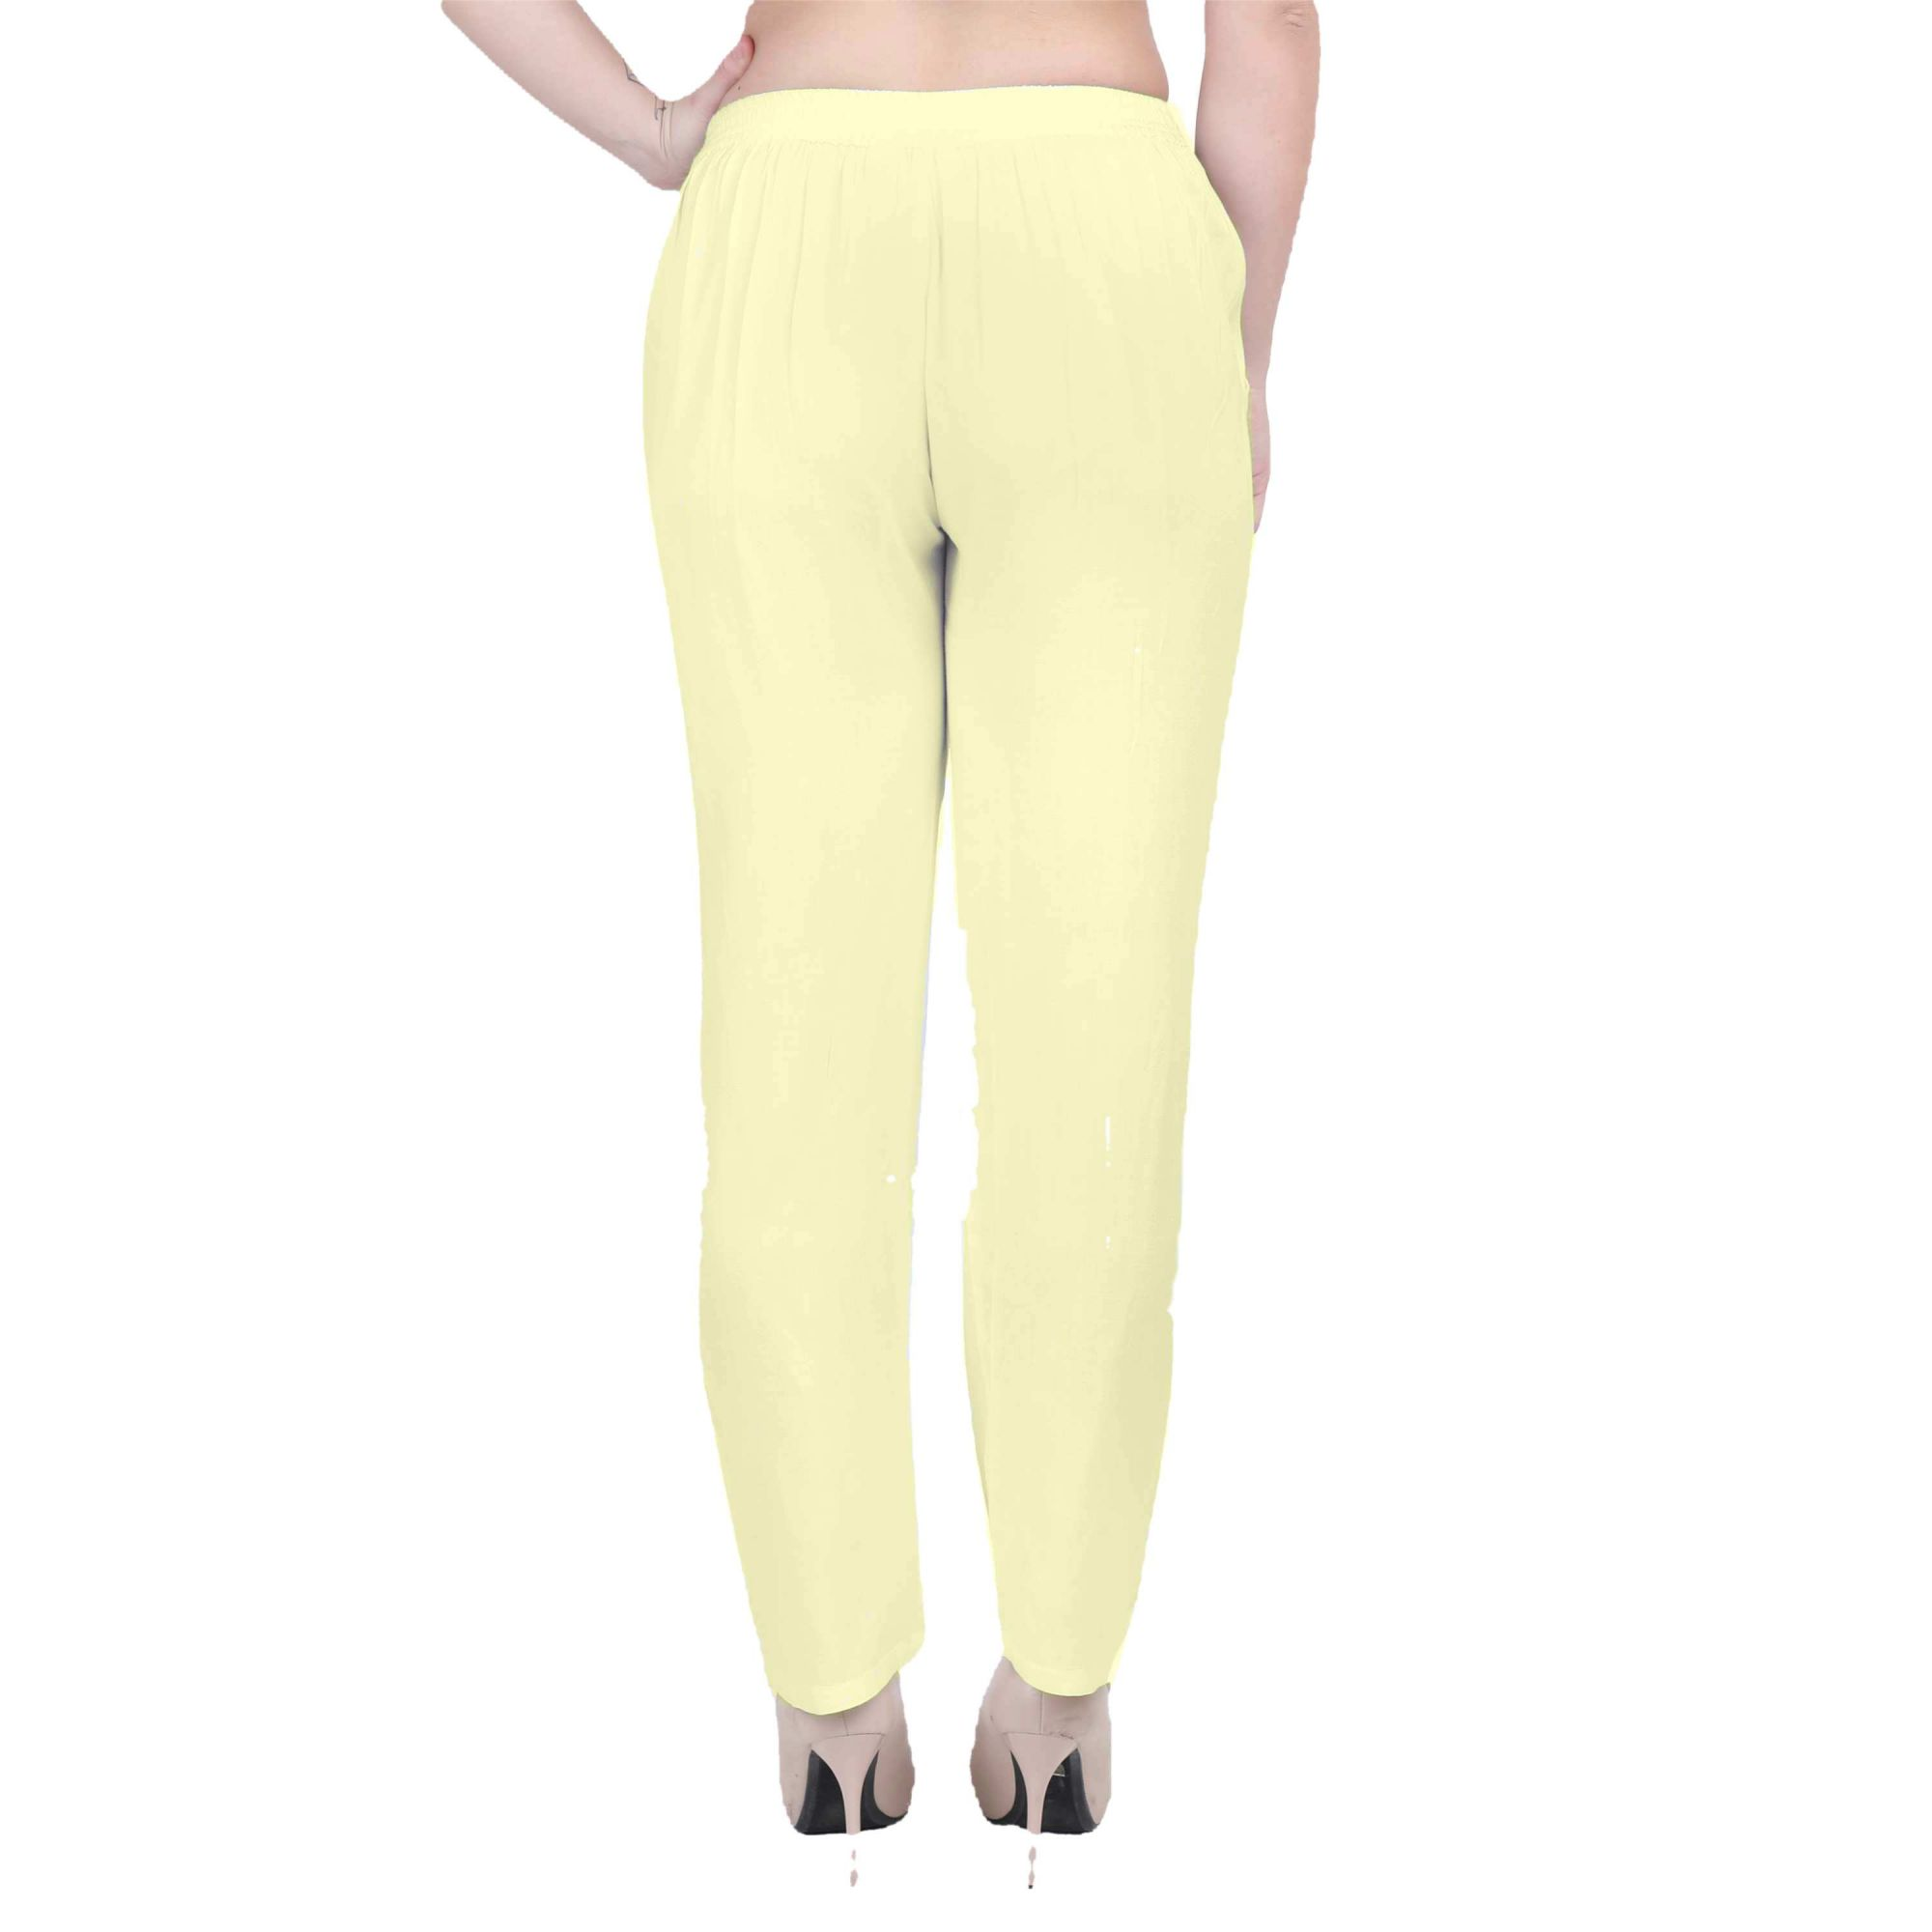 Western Fit Formal Trousers in Cream